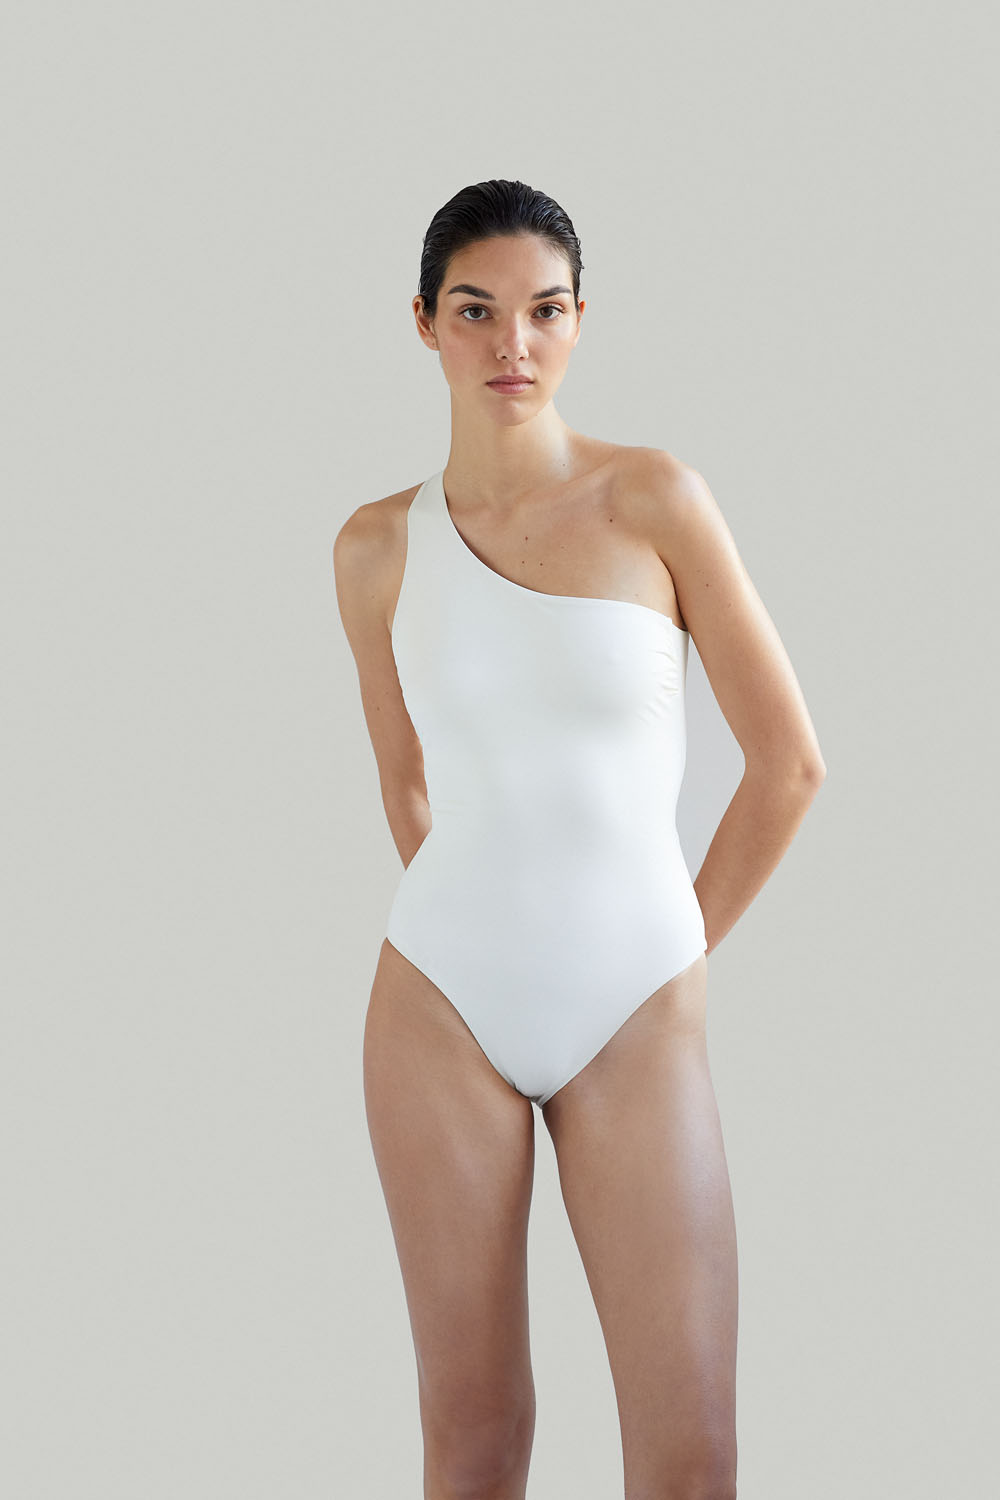 Sustainable Luxury Swimwear / Ropa de baño sostenible, onepiece swimsuit/ bañador ecológico. Sendai onepiece shell by NOW_THEN